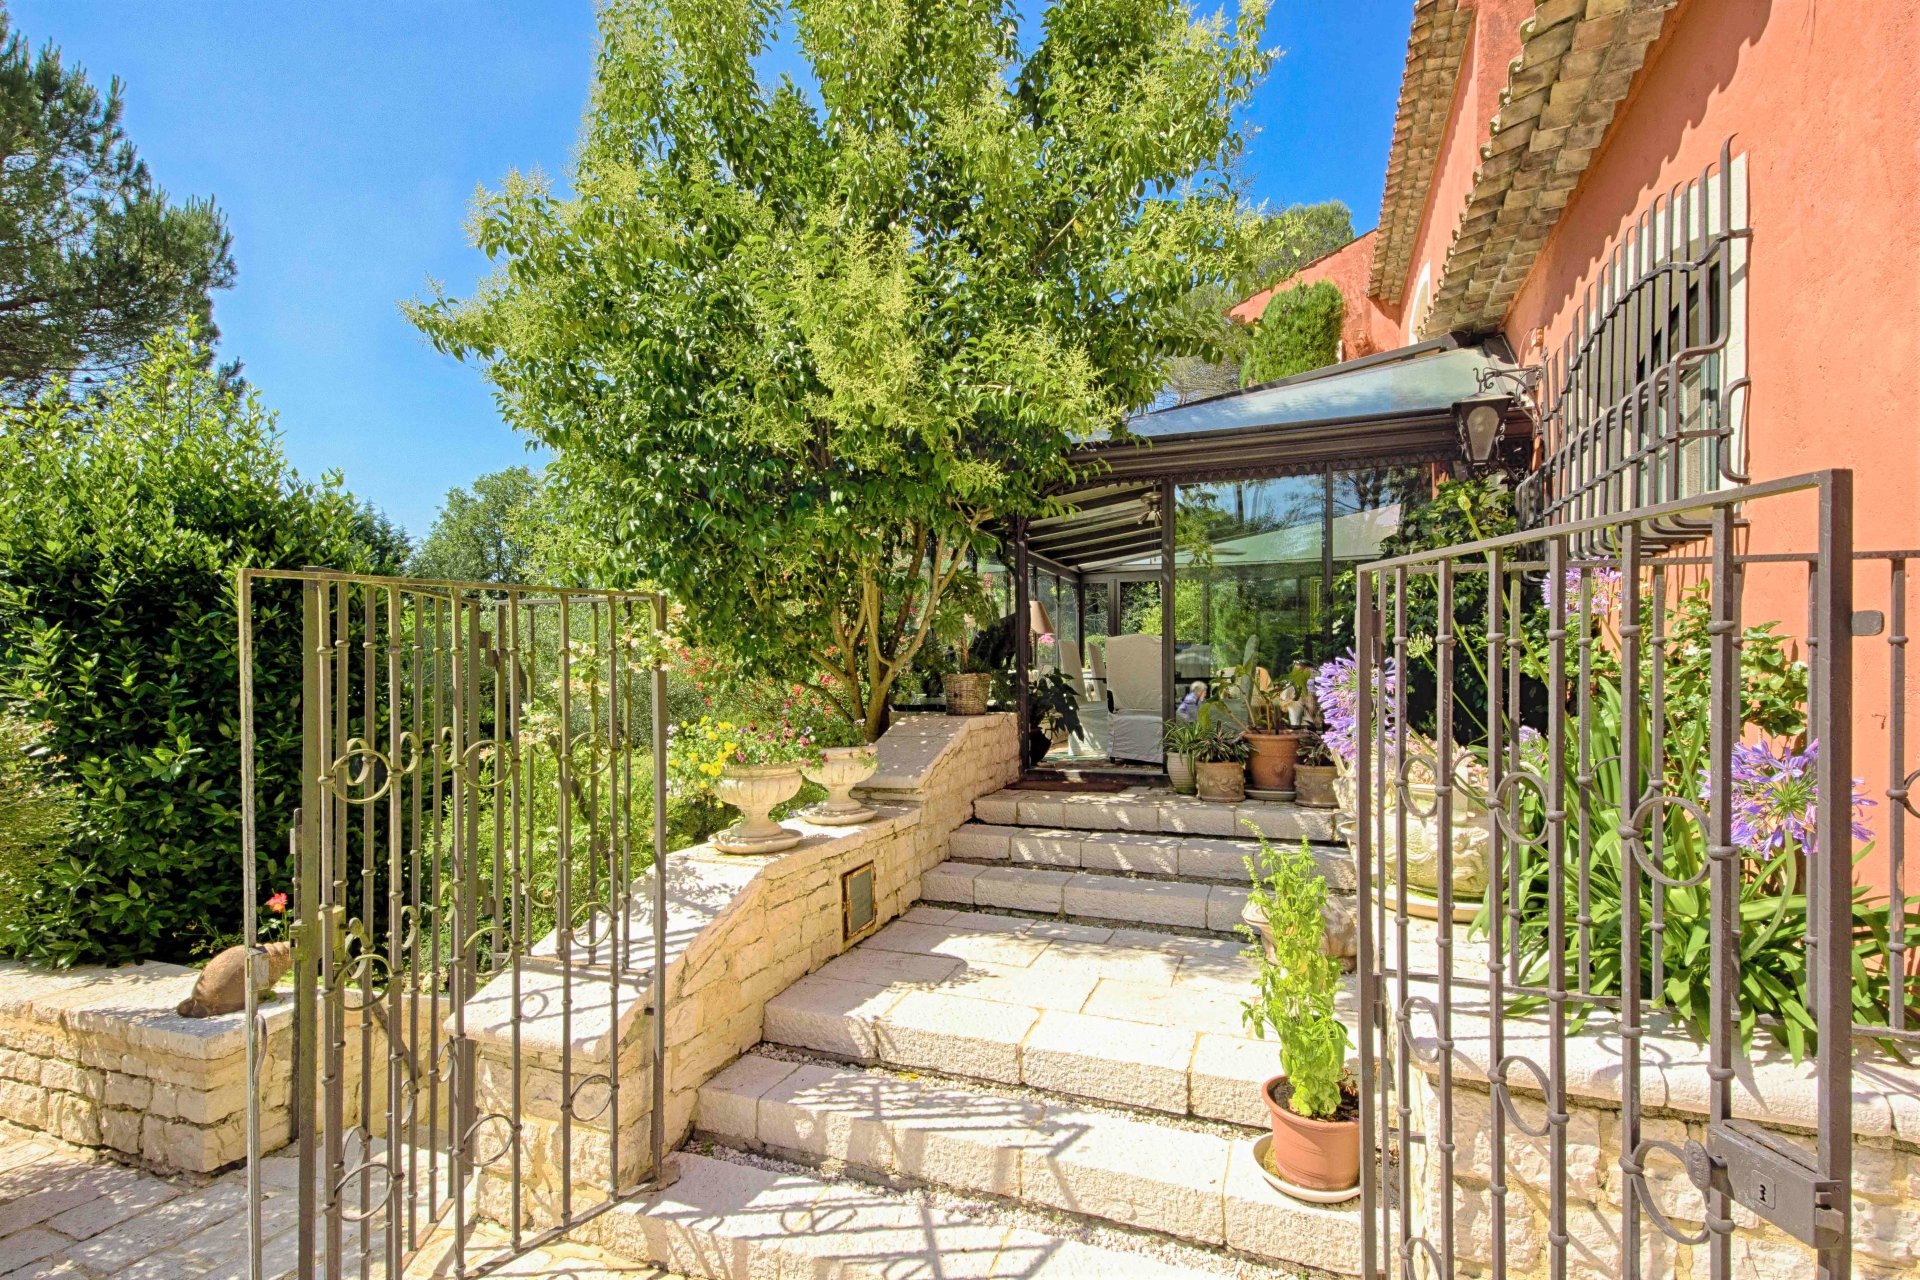 Mougins, domaine de la Peyrière, charming property with cos residual important